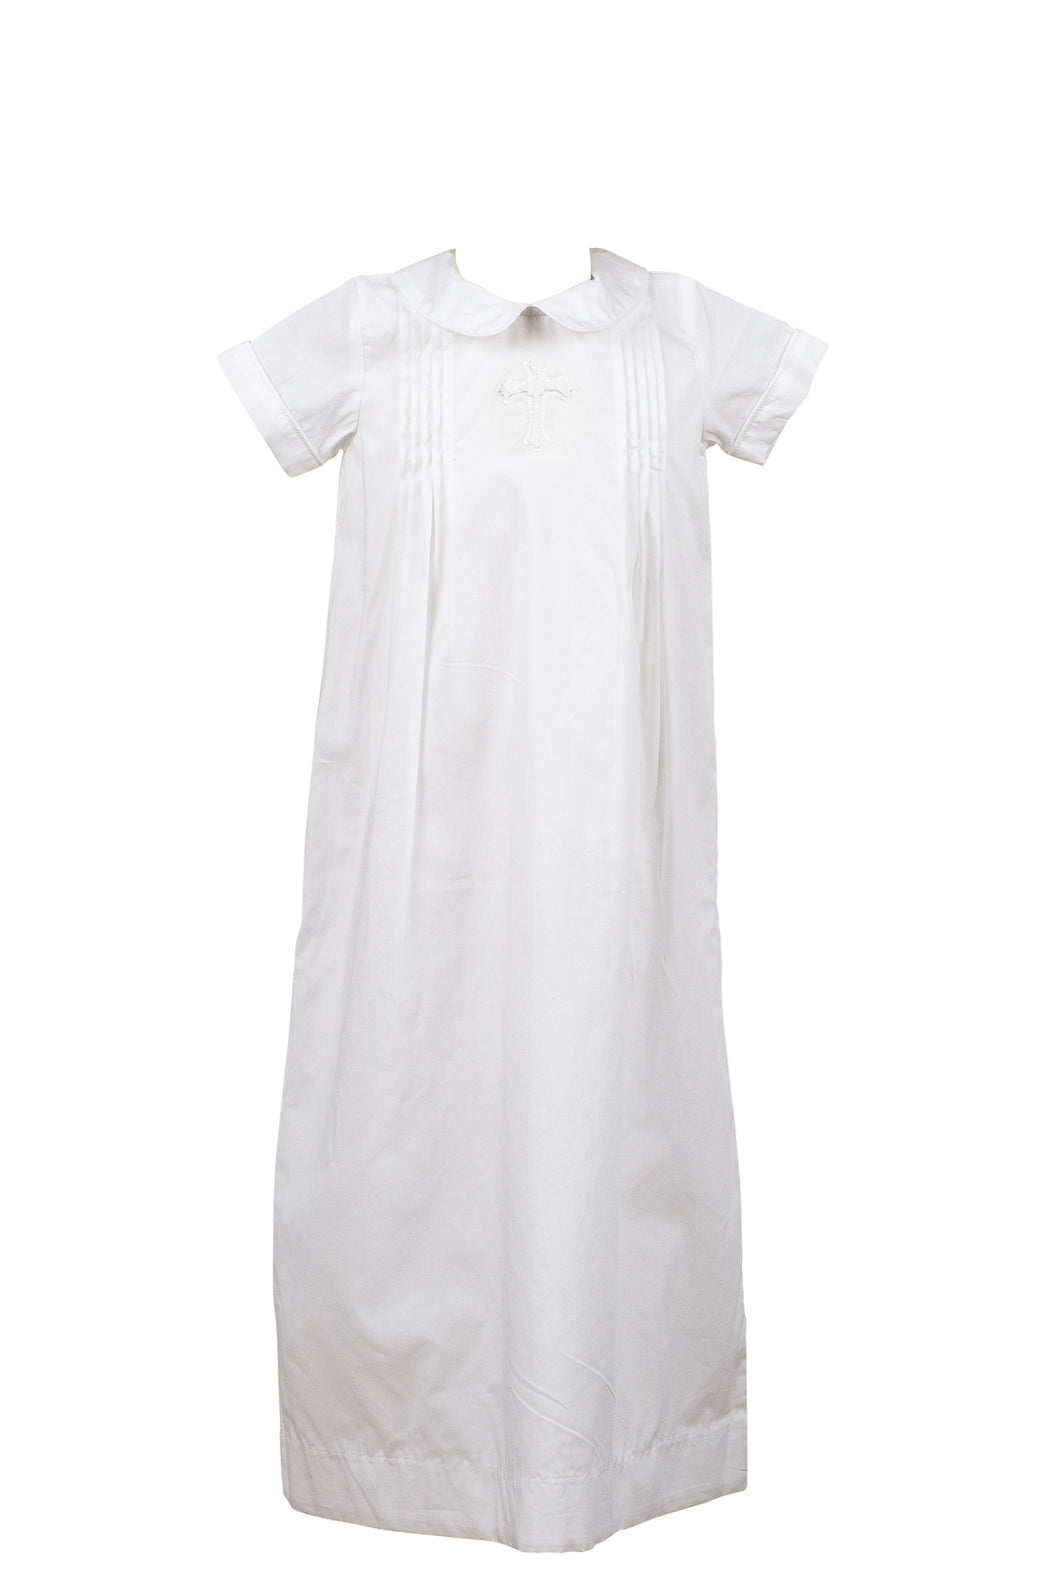 Cross Baptism Gown - Boy